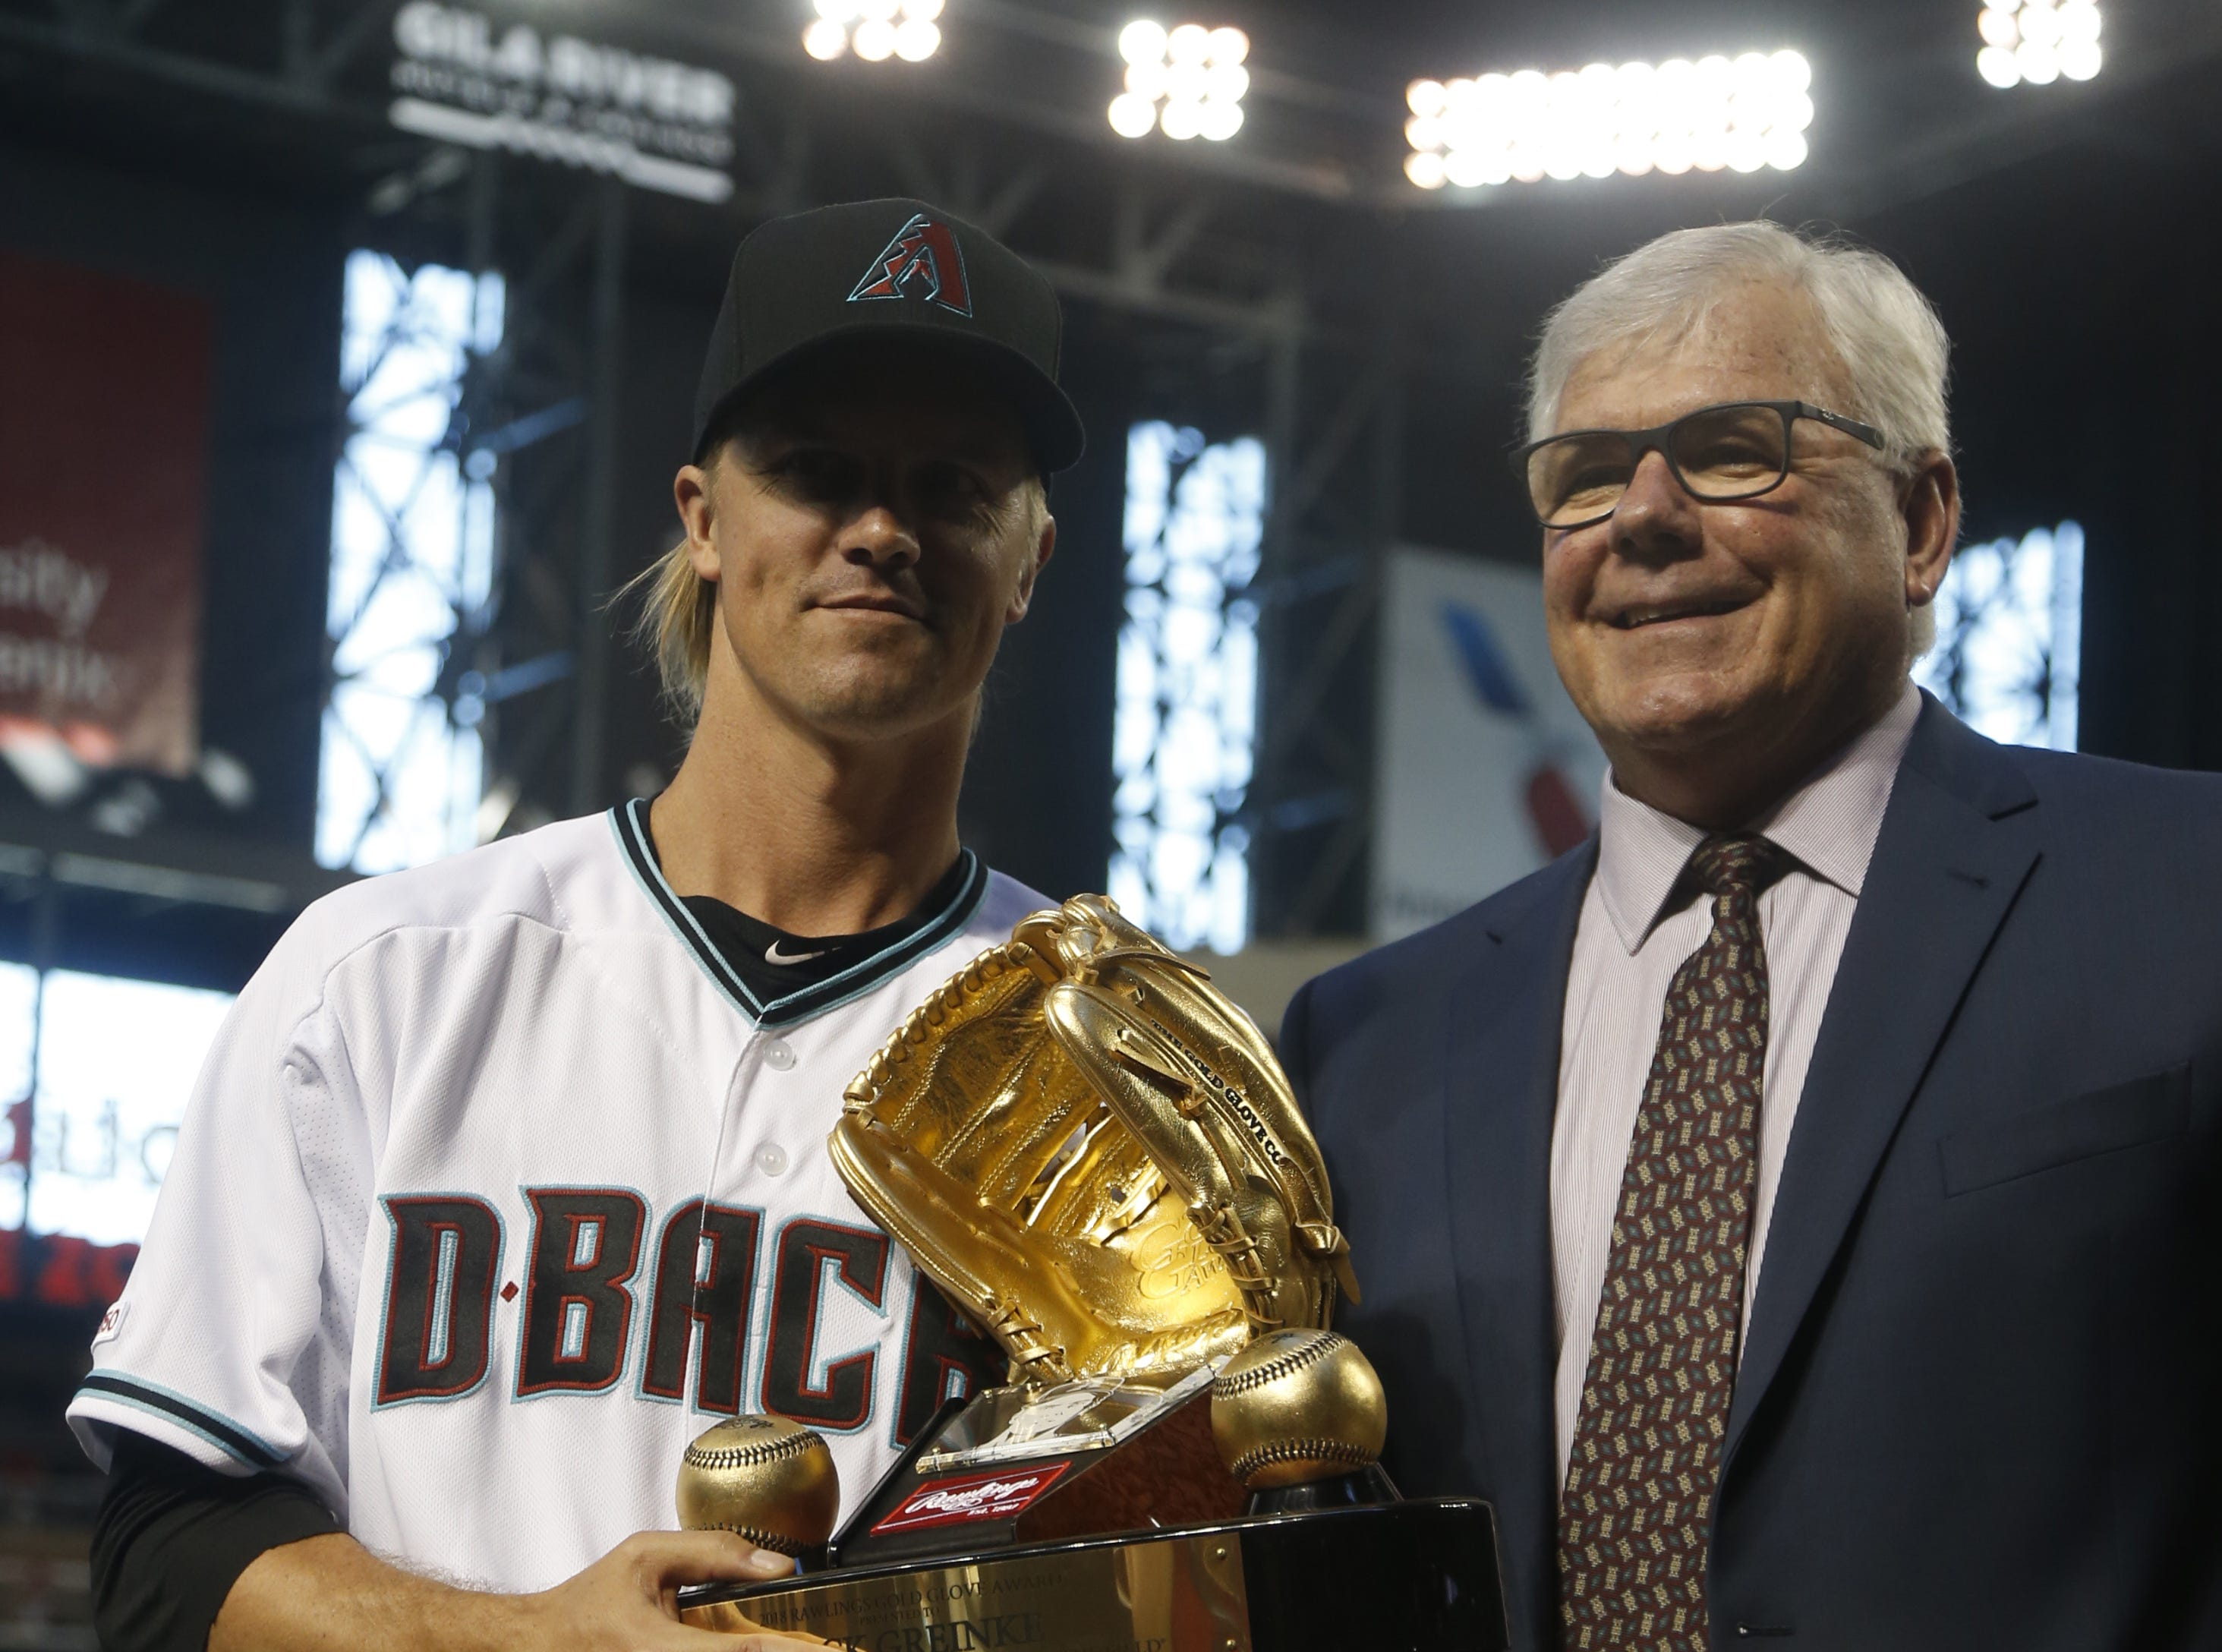 Diamondbacks' Zack Greinke accepts the Golden Glove Award from an MLB official before the Diamondbacks vs. Red Sox game at Chase Field on the Opening Day for the Diamondbacks in Phoenix, Ariz. on April 5, 2019.